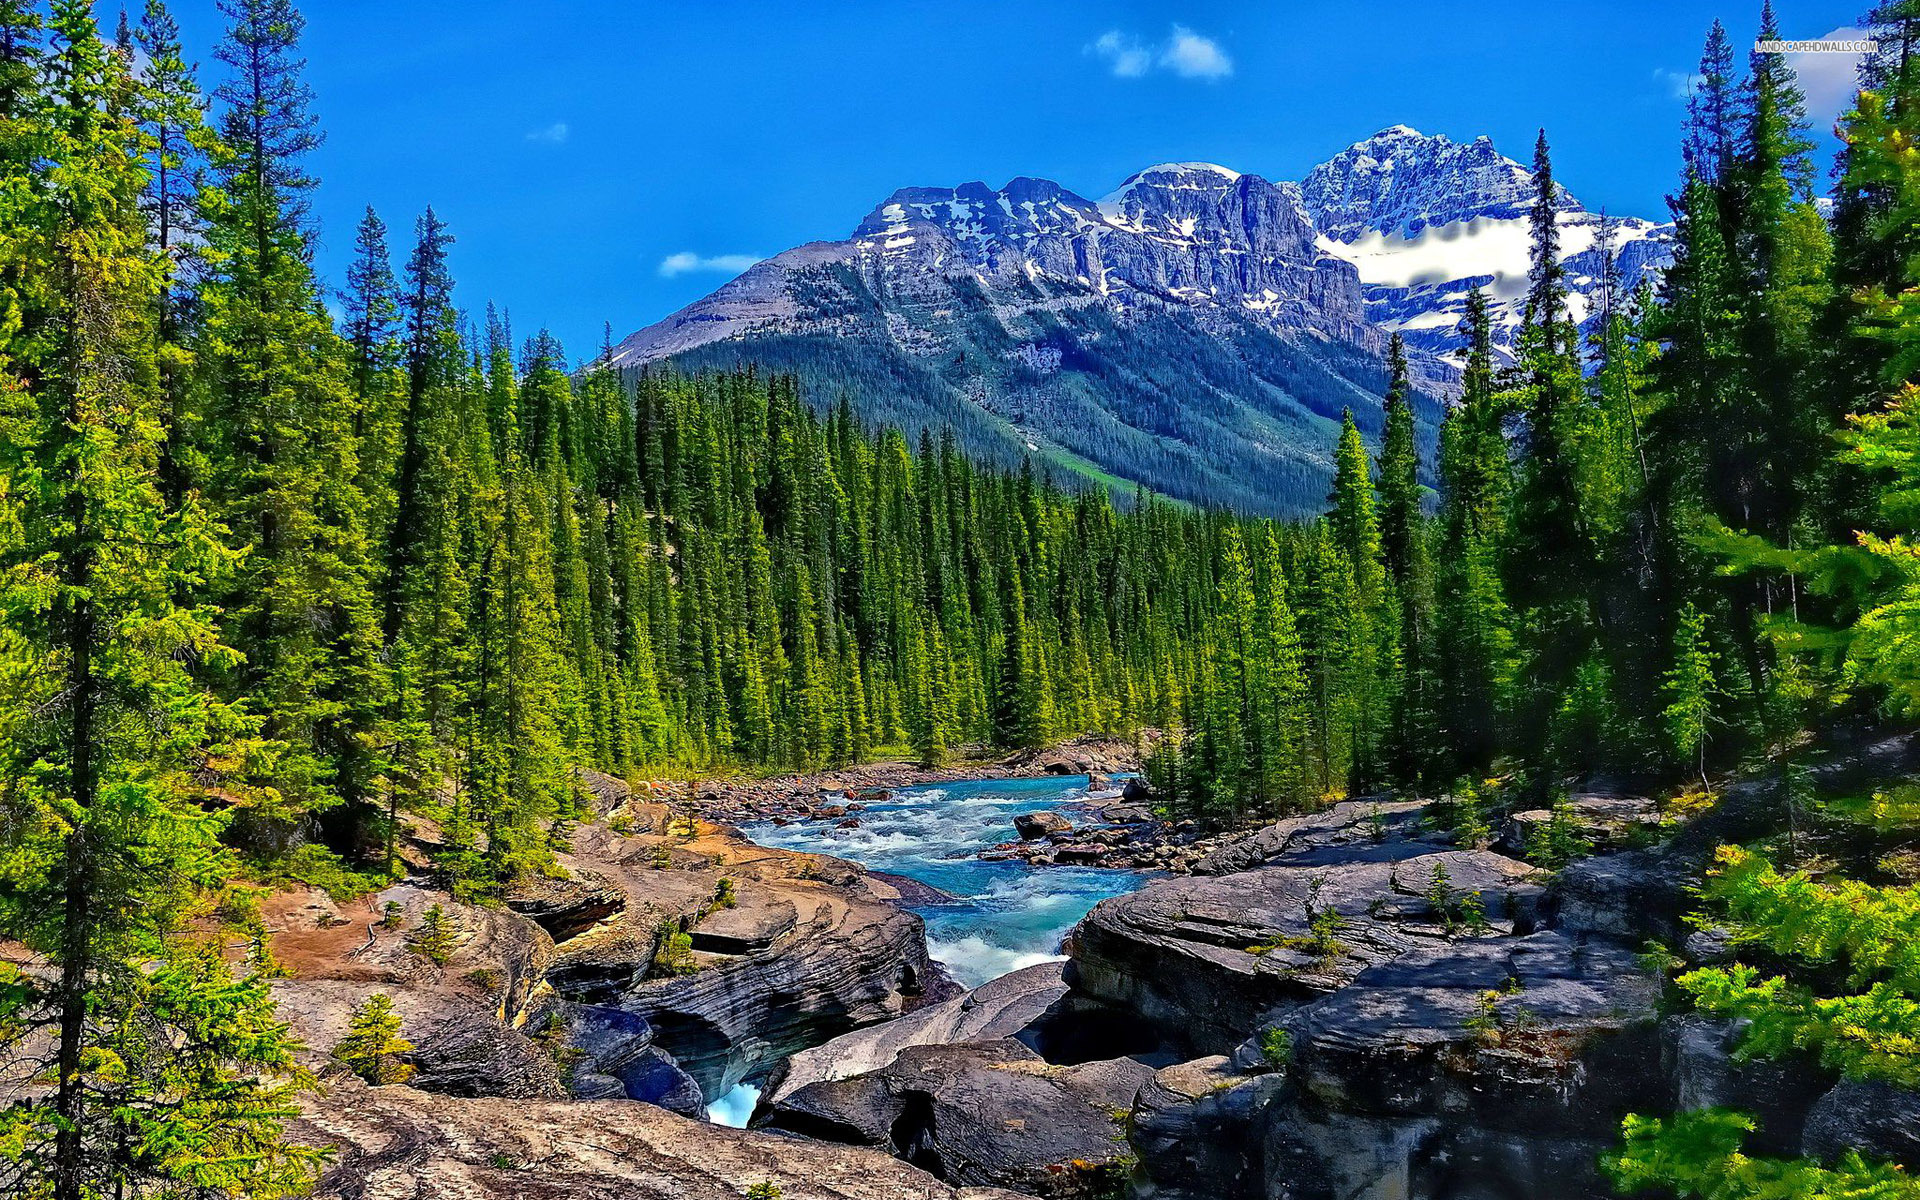 Amazing mountain stream Wallpaper